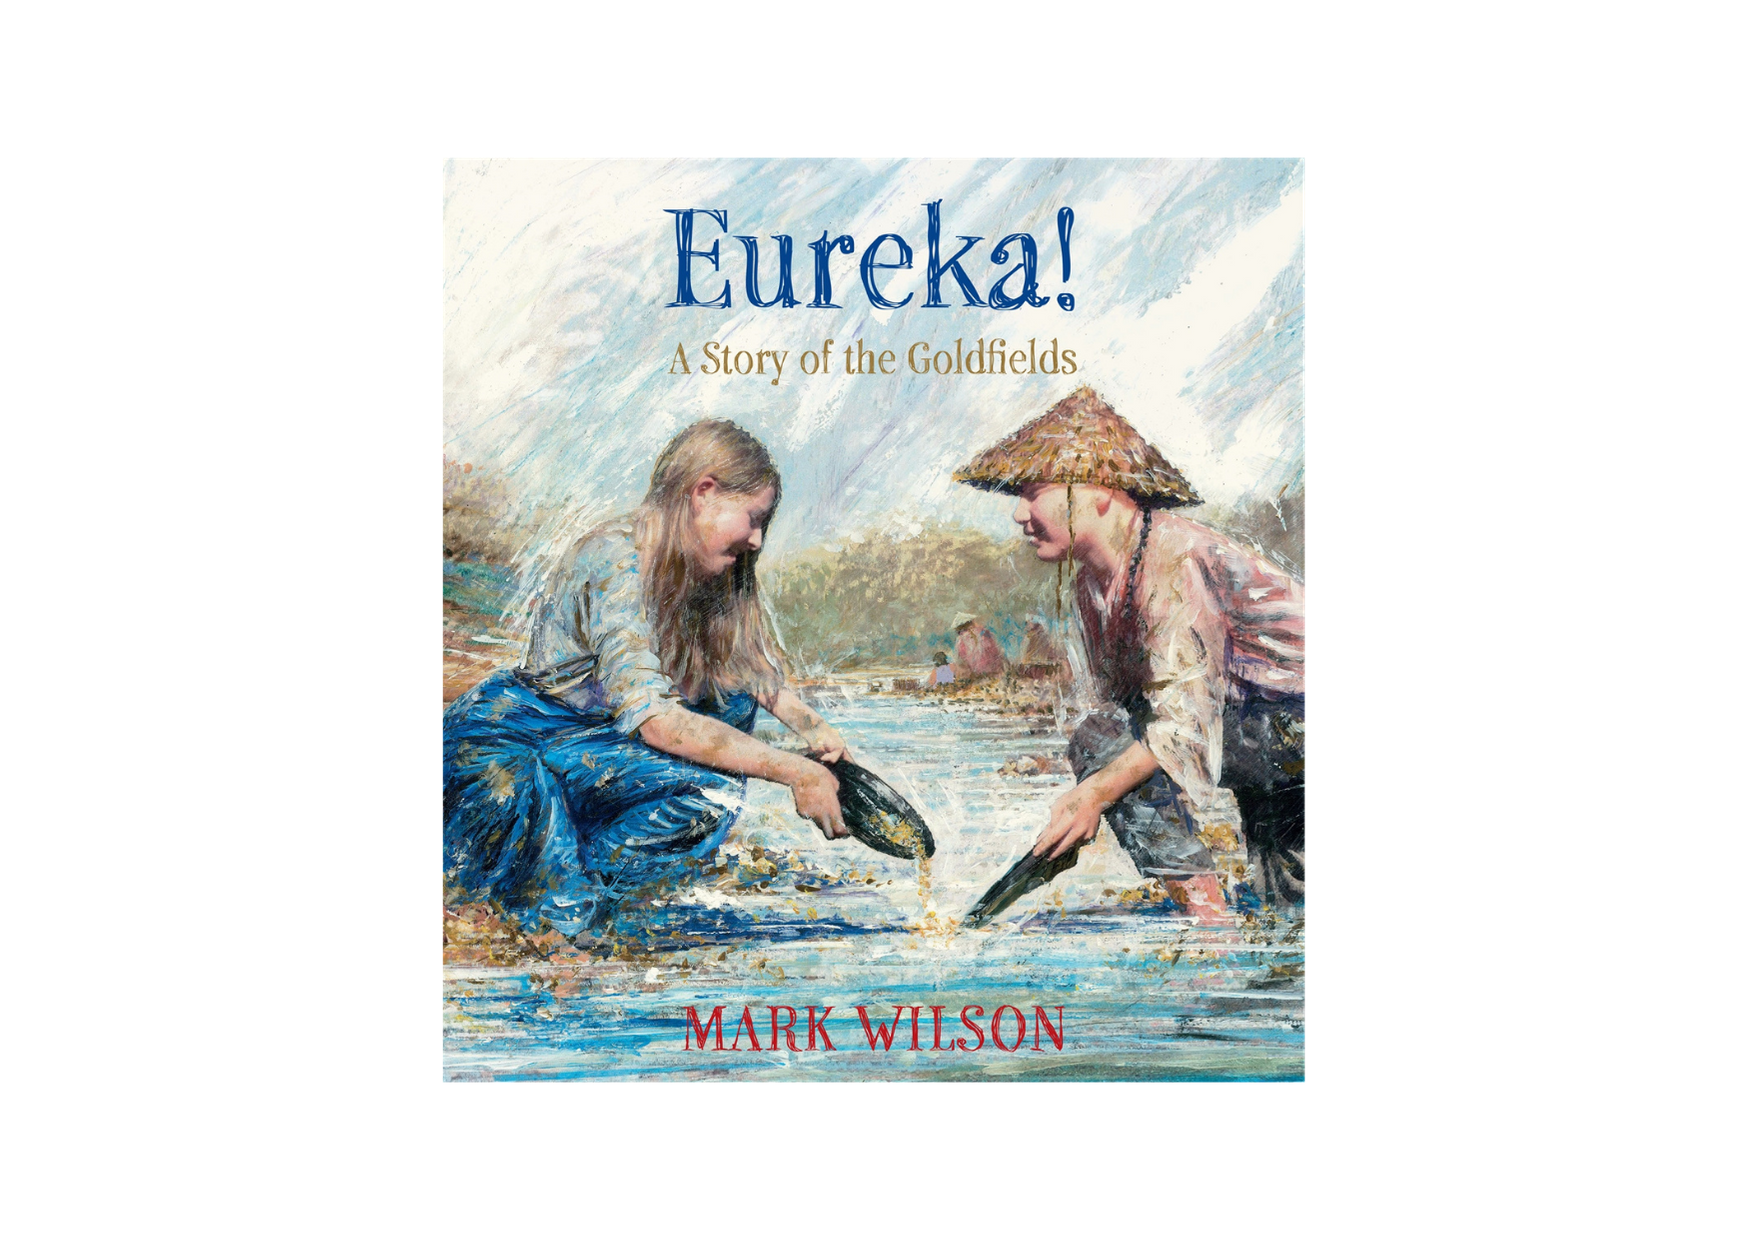 Eureka!: A story of the goldfields